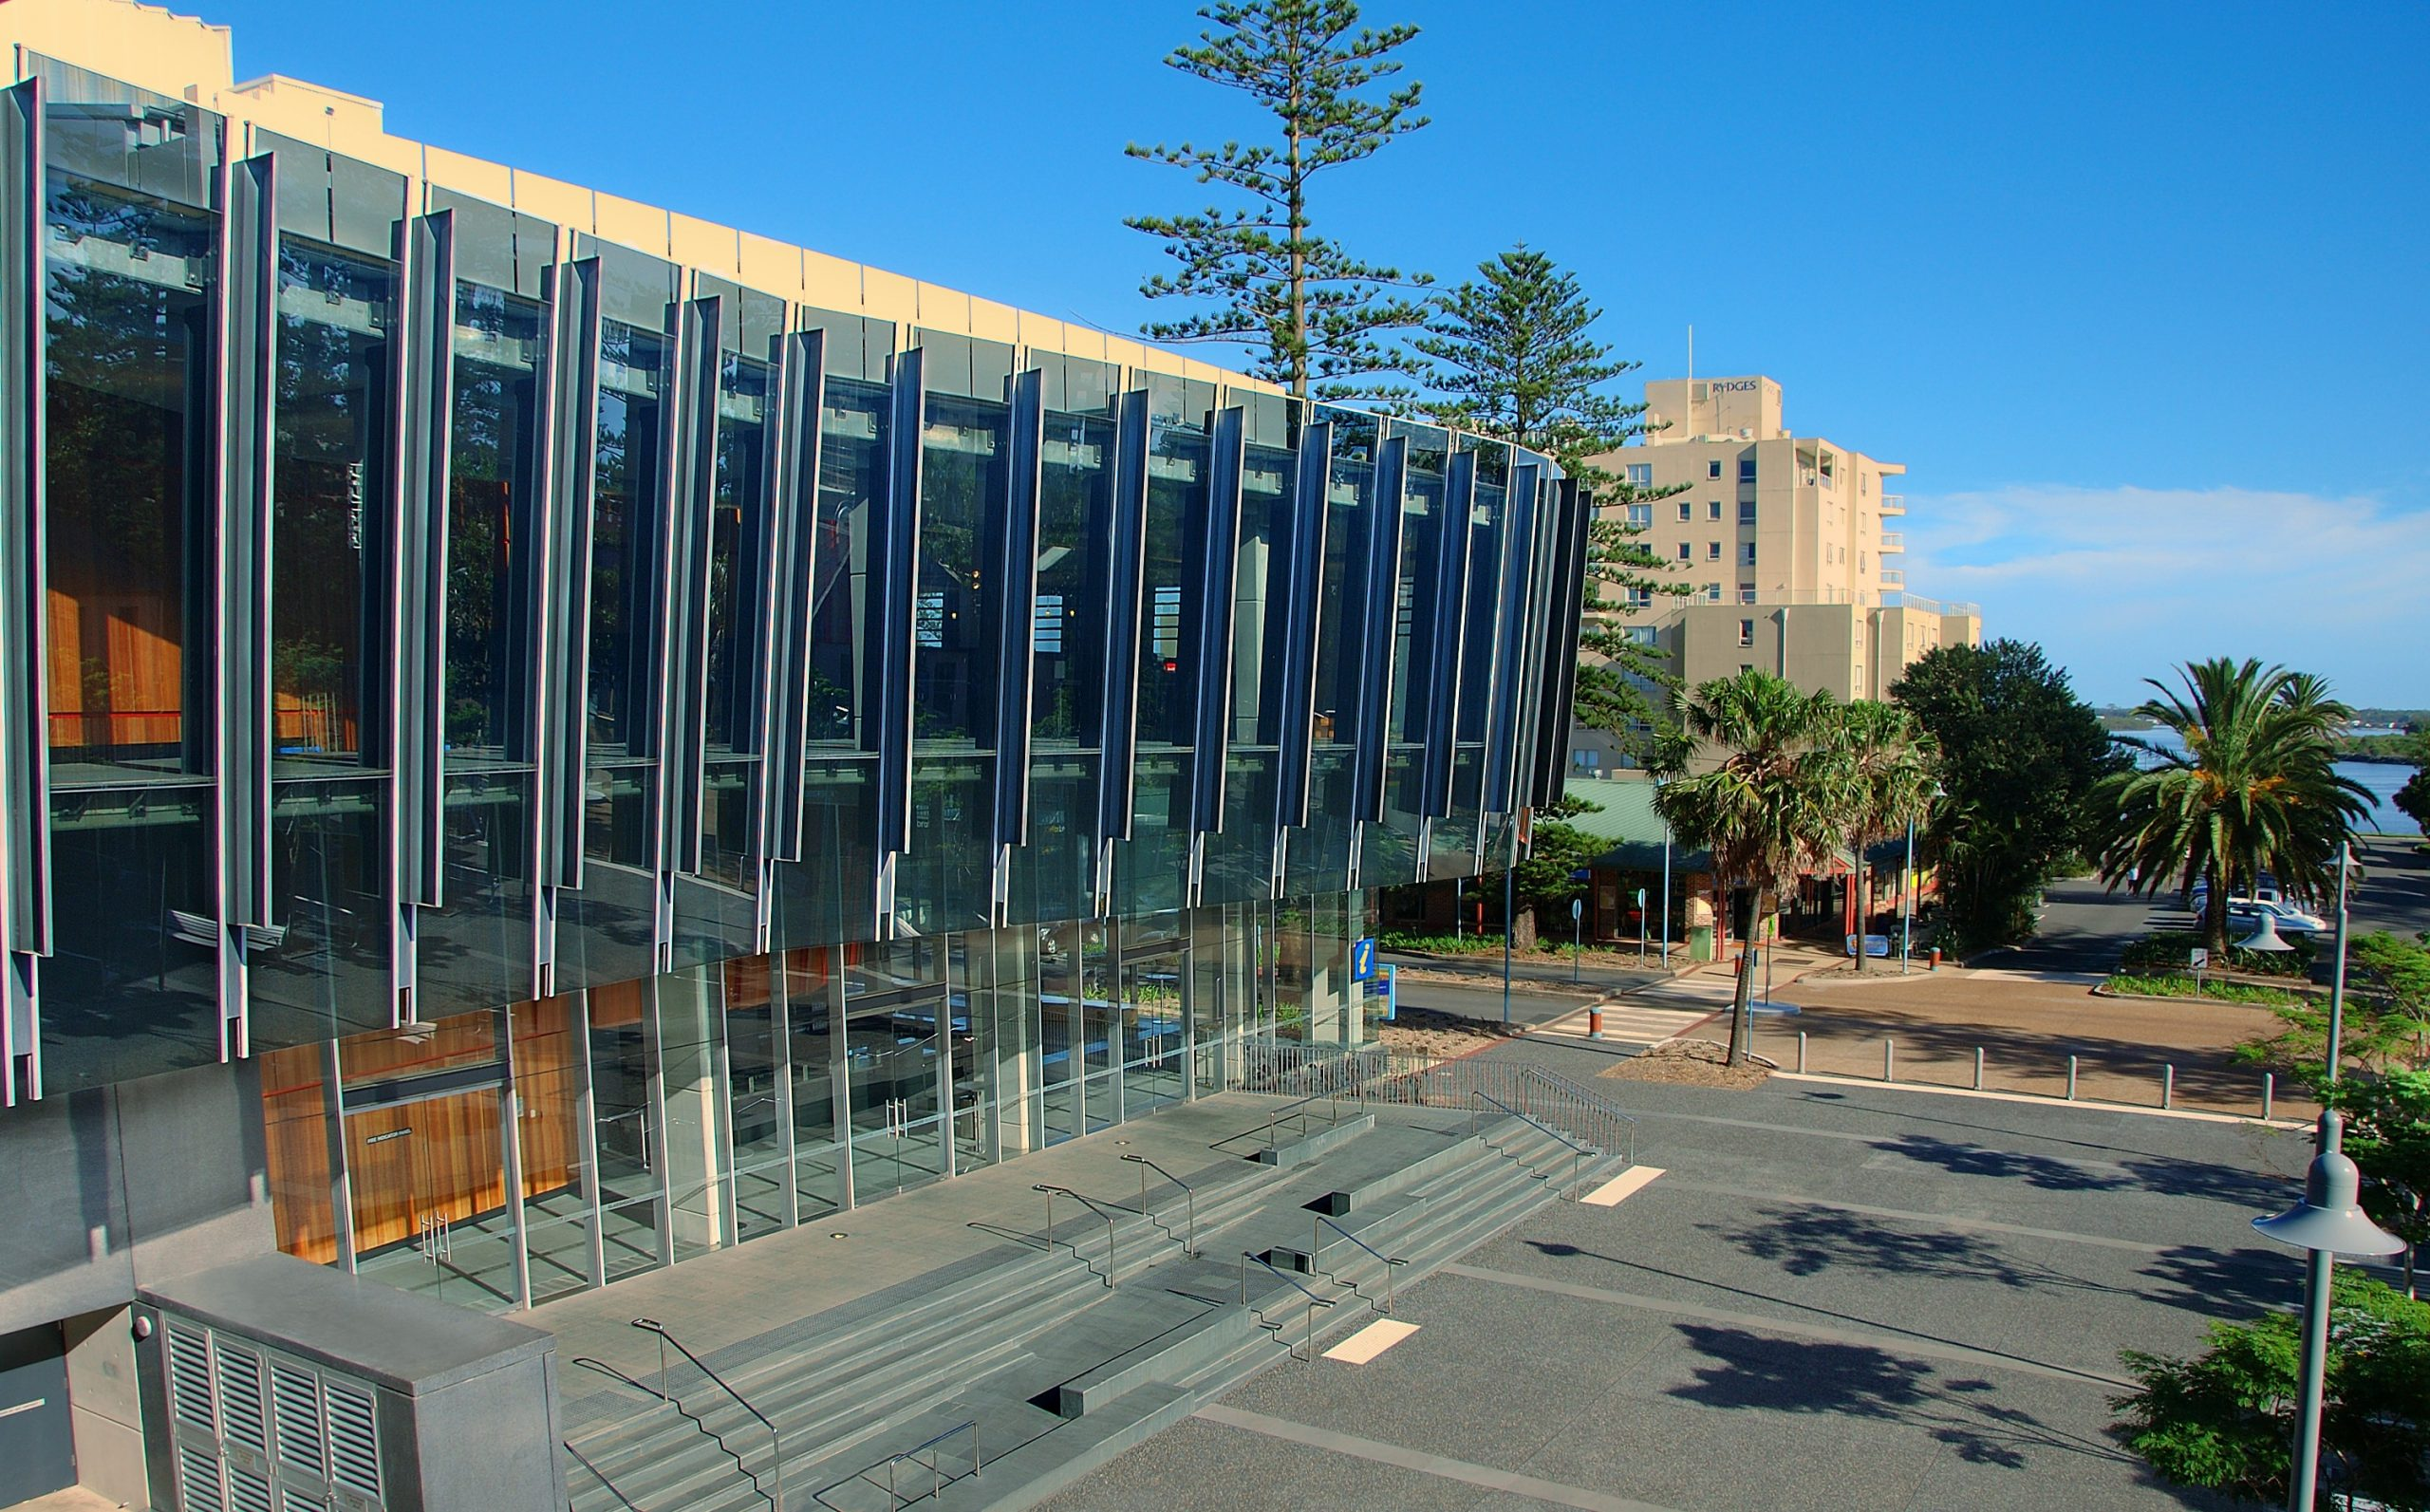 Glasshouse Arts, Conference and Entertainment Centre